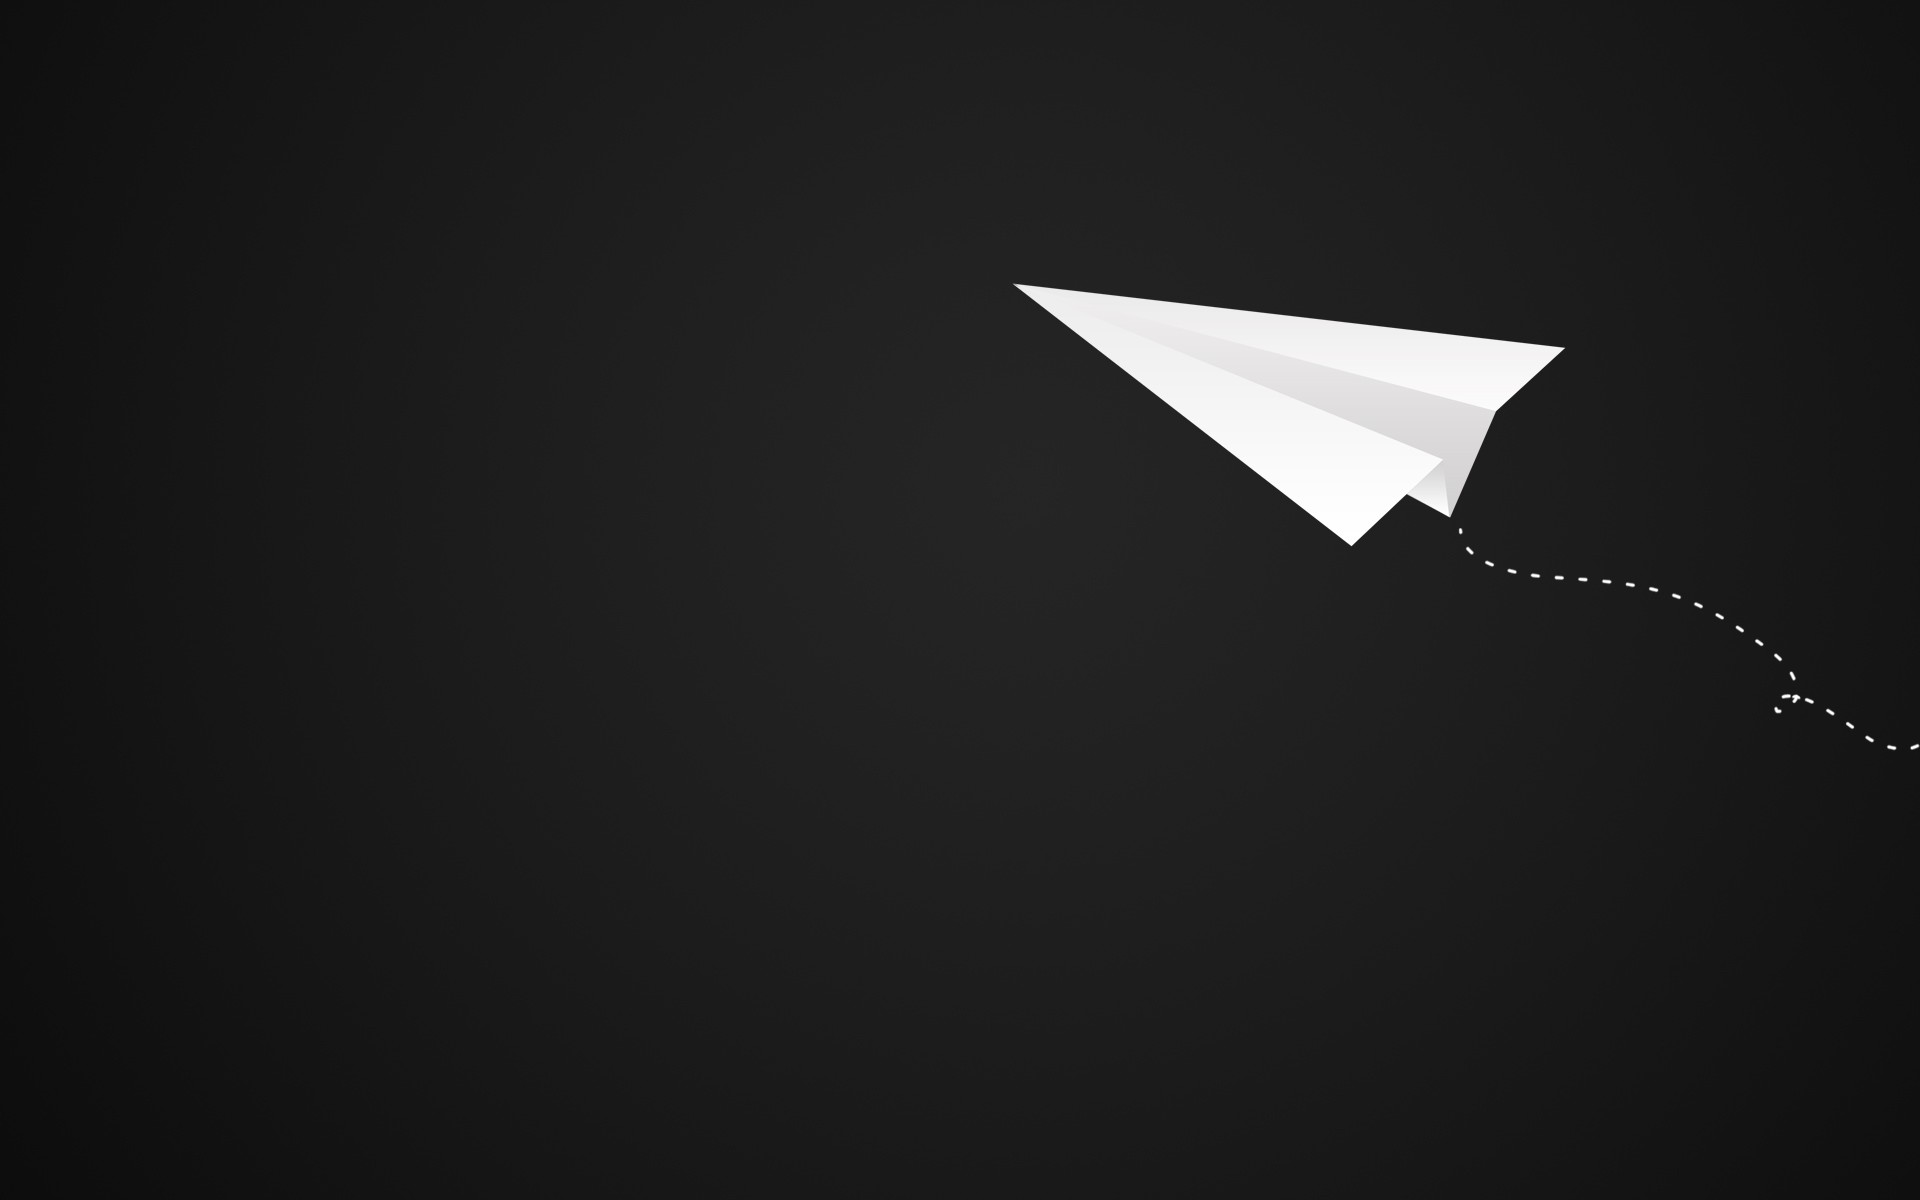 paper airplane desktop wallpaper 58076 1920x1200px